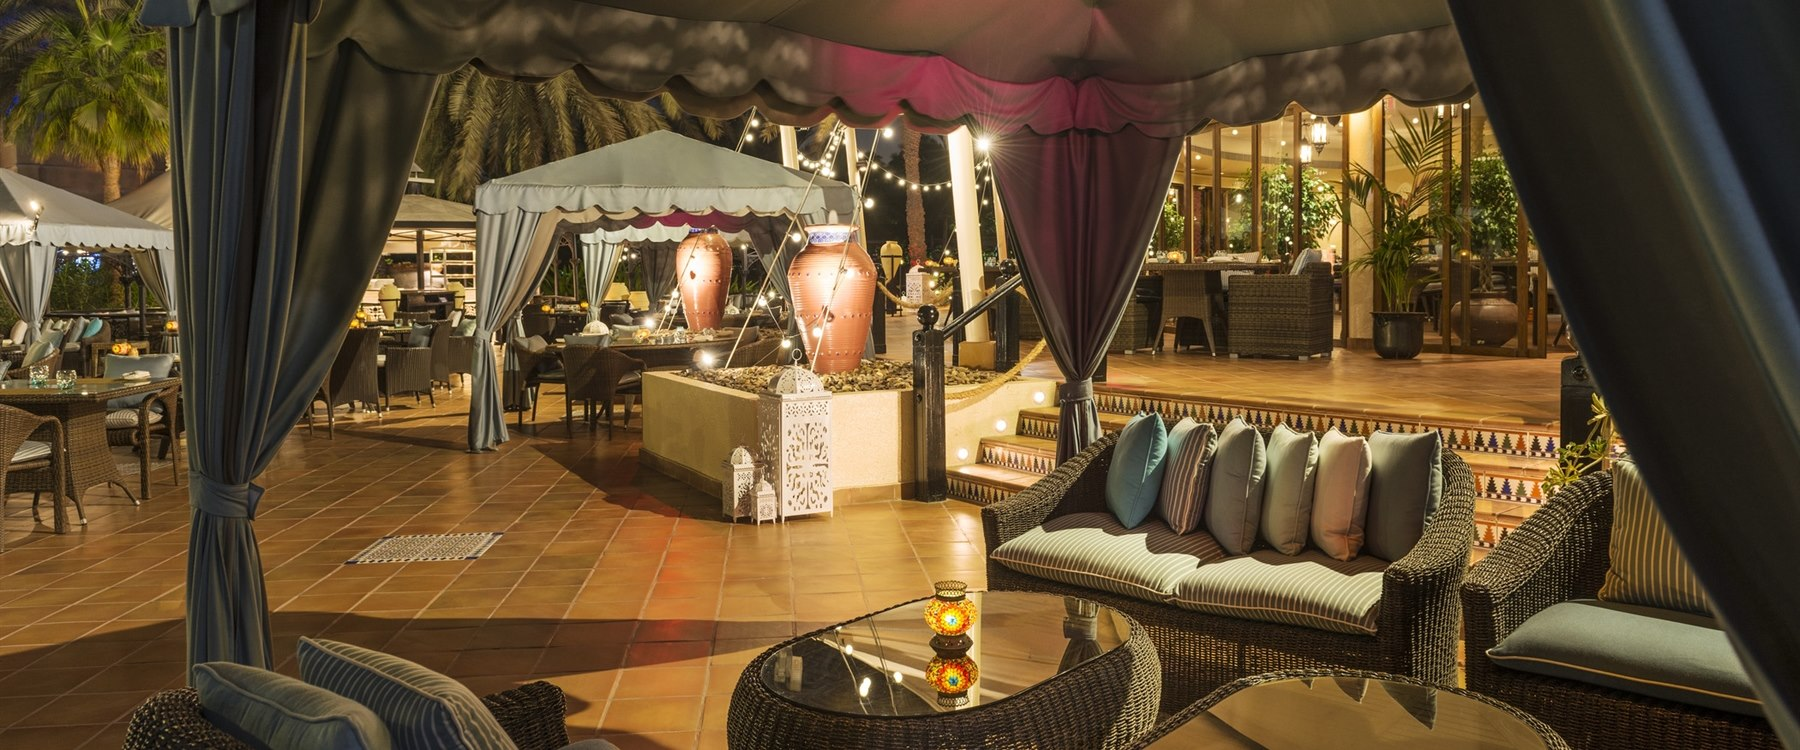 Tent Lounge at Le Royal Meridien Beach Resort & Spa